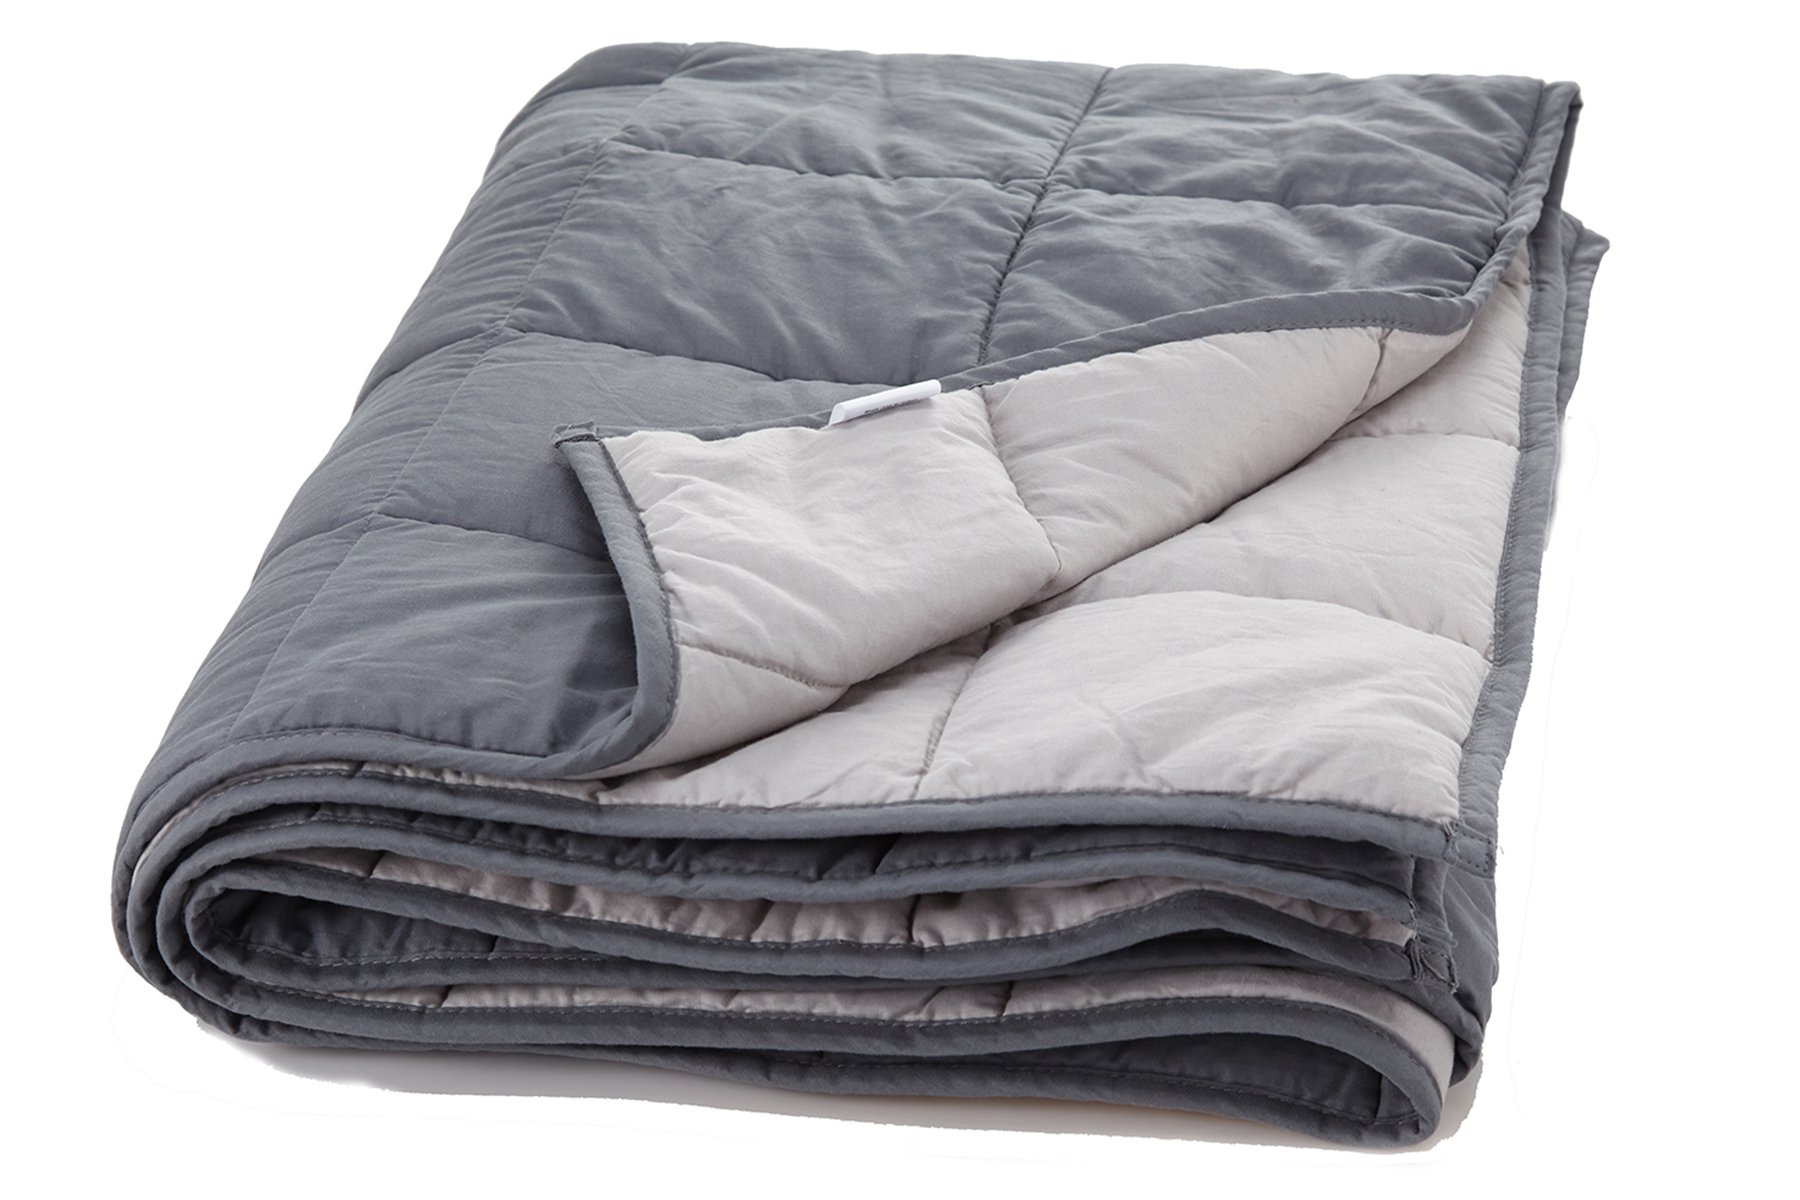 "Weighted Blanket Sensory Solutions for Adults and Kids | Size Large 15 lbs 48"" X 72"" Dark Grey 